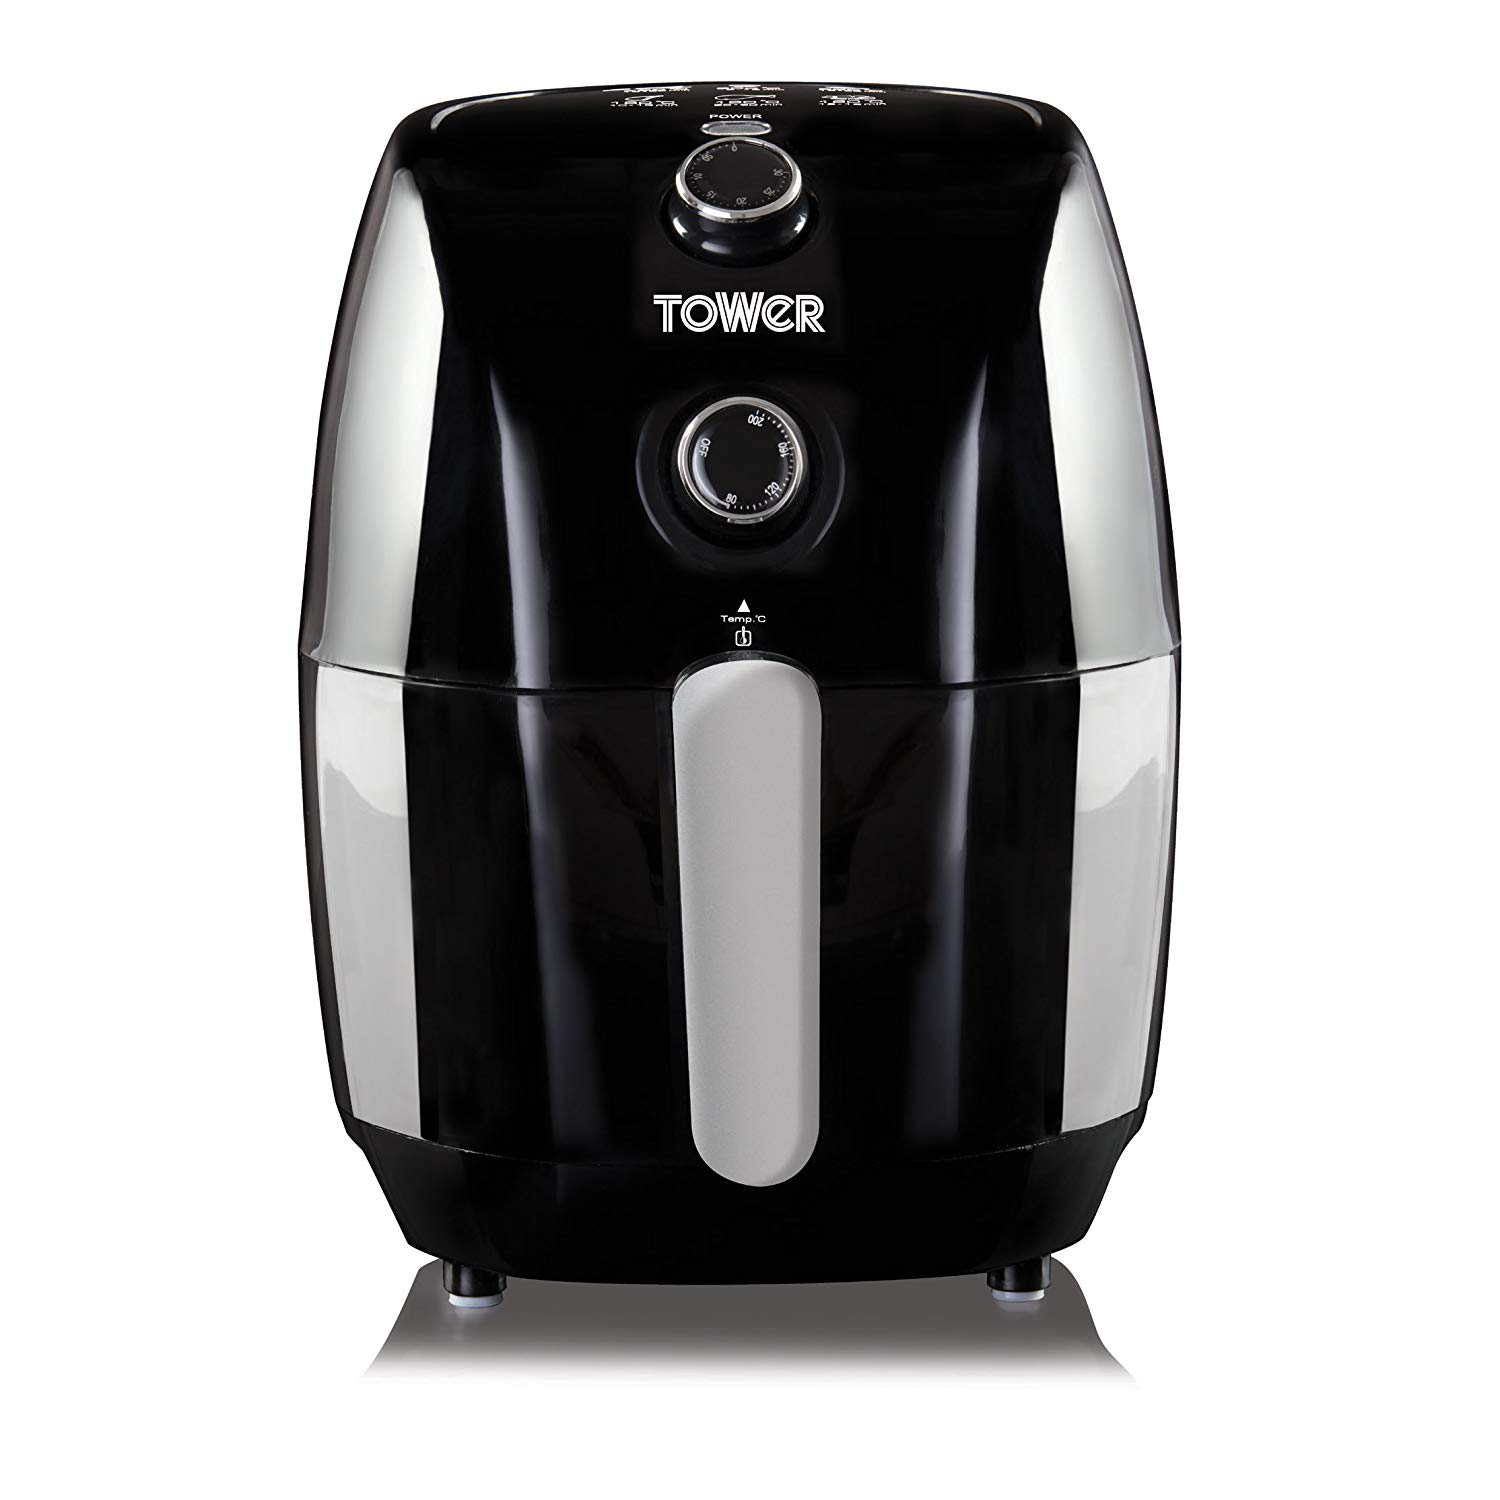 Tower T17025 Compact Air Fryer with 30 Minute Timer for £23.99